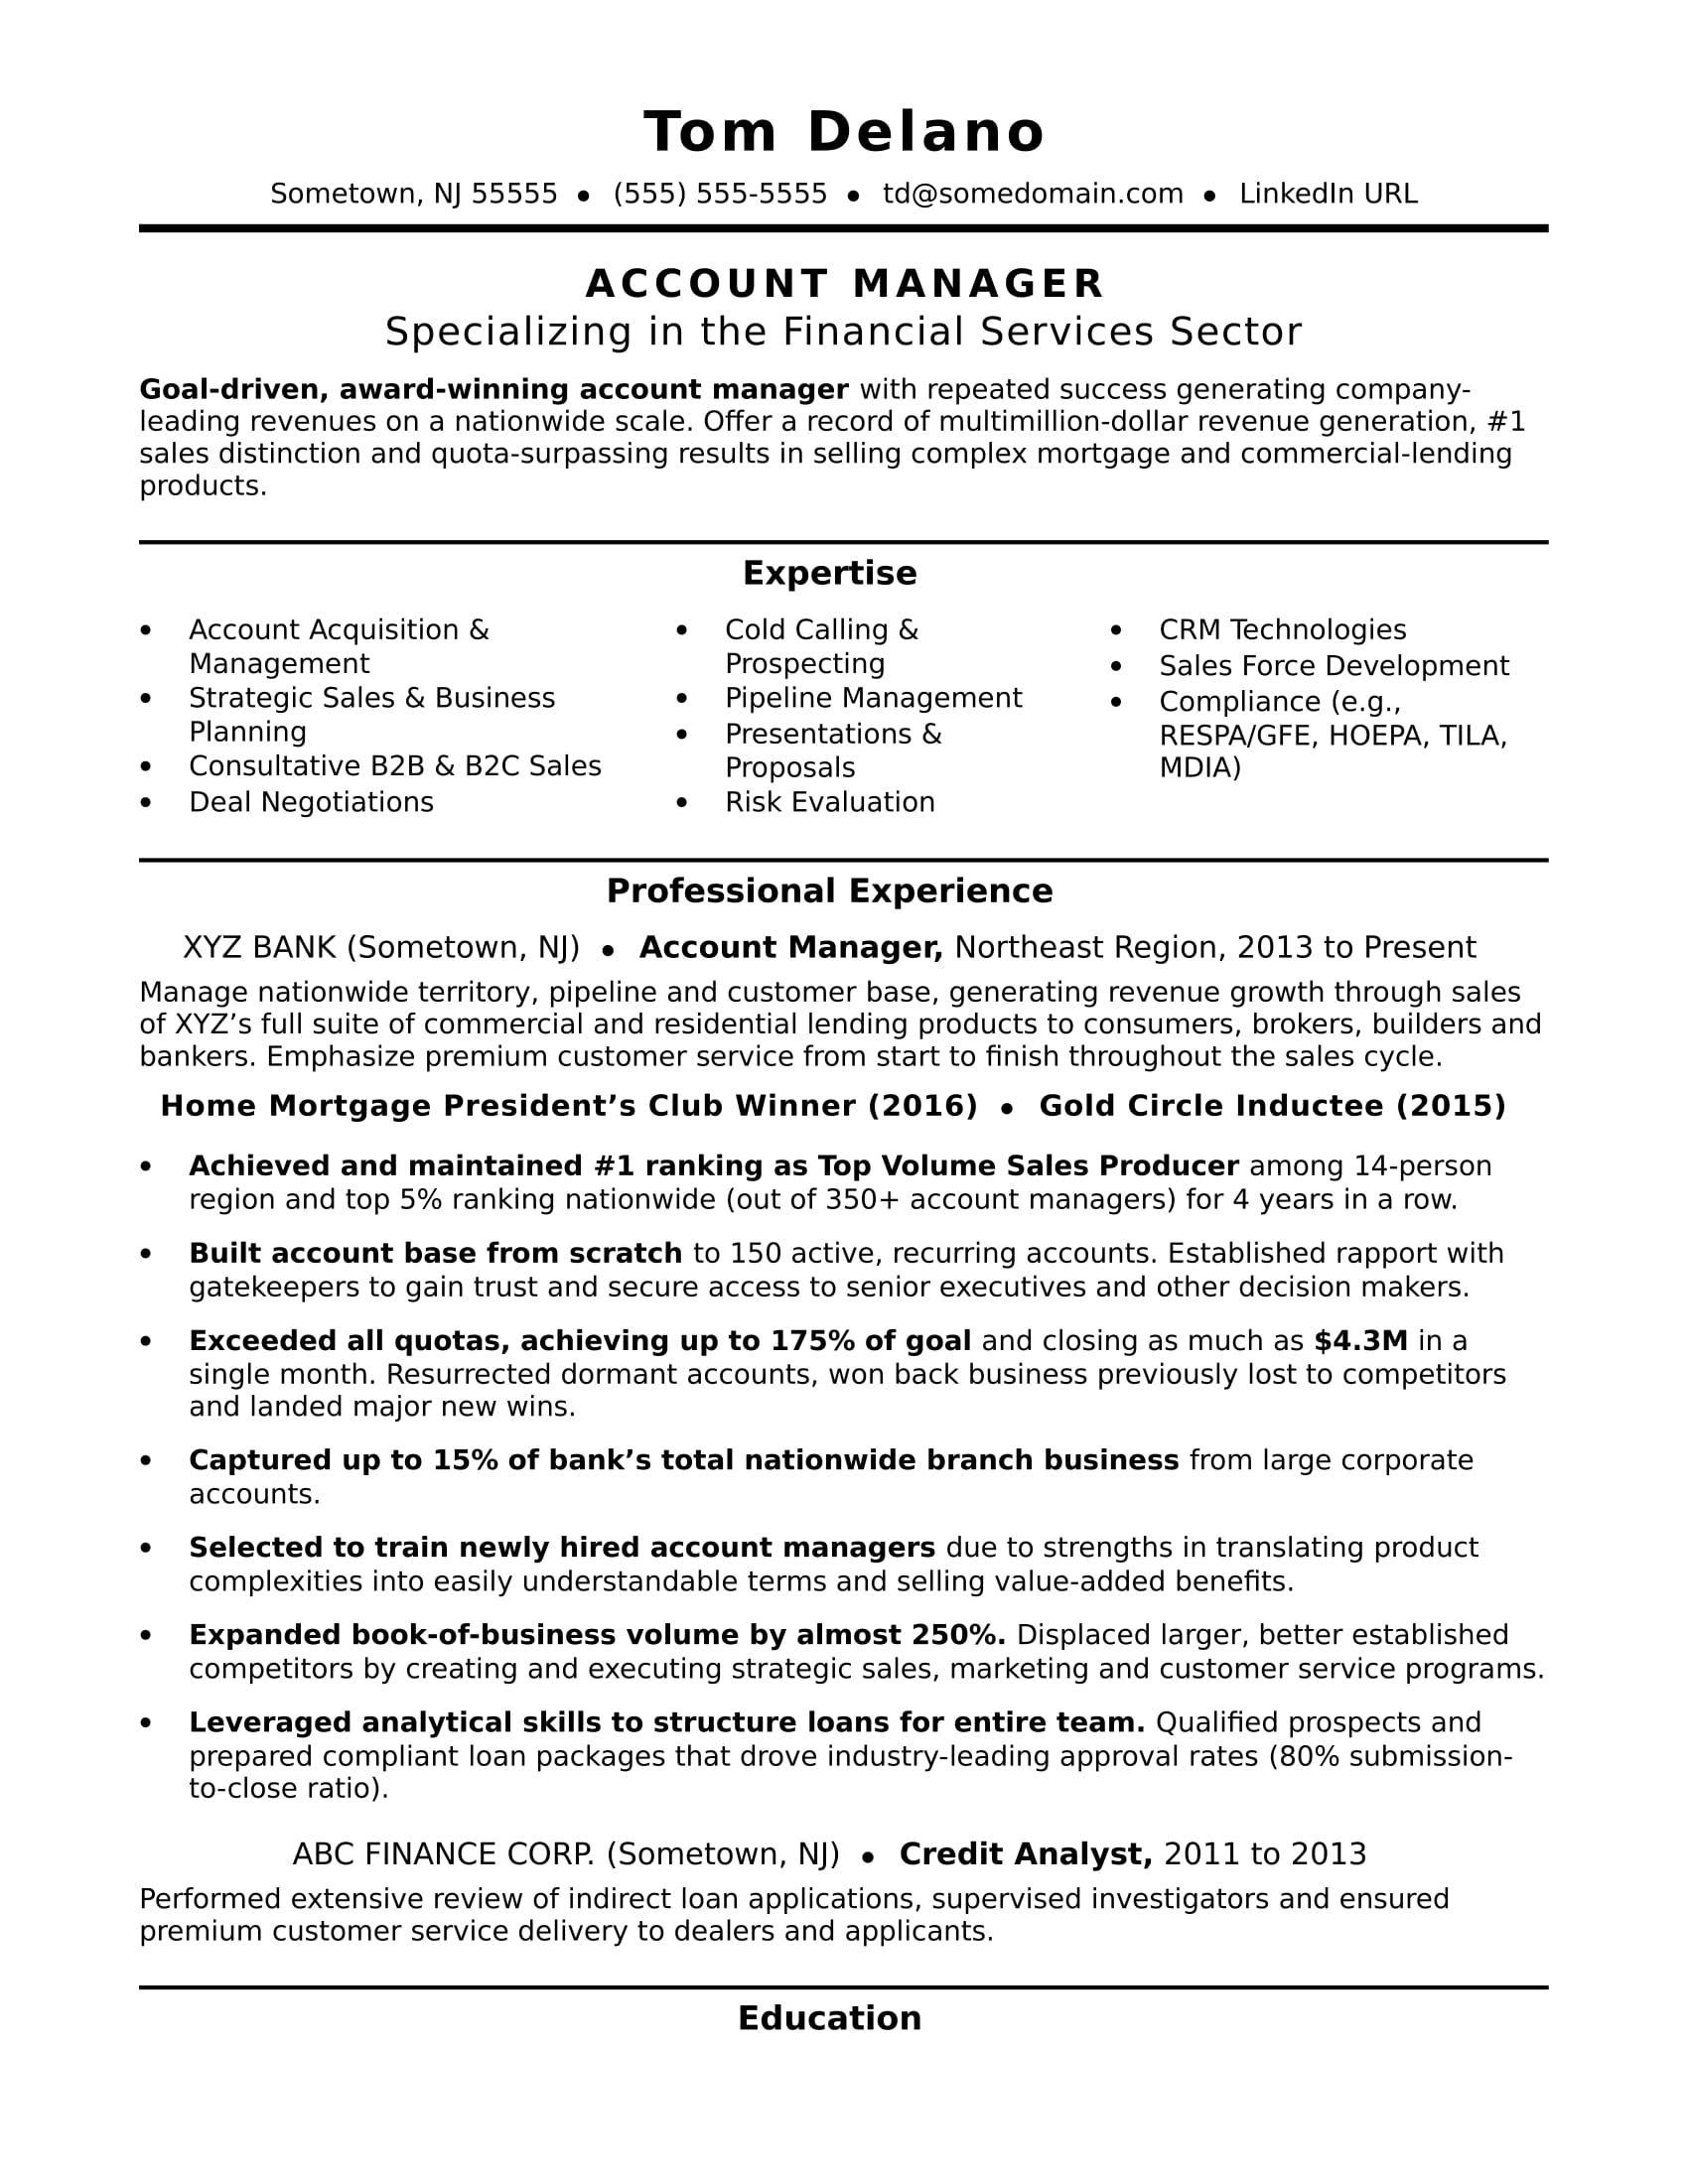 Account Manager Resume Sample Accounting Manager Manager Resume Job Resume Template